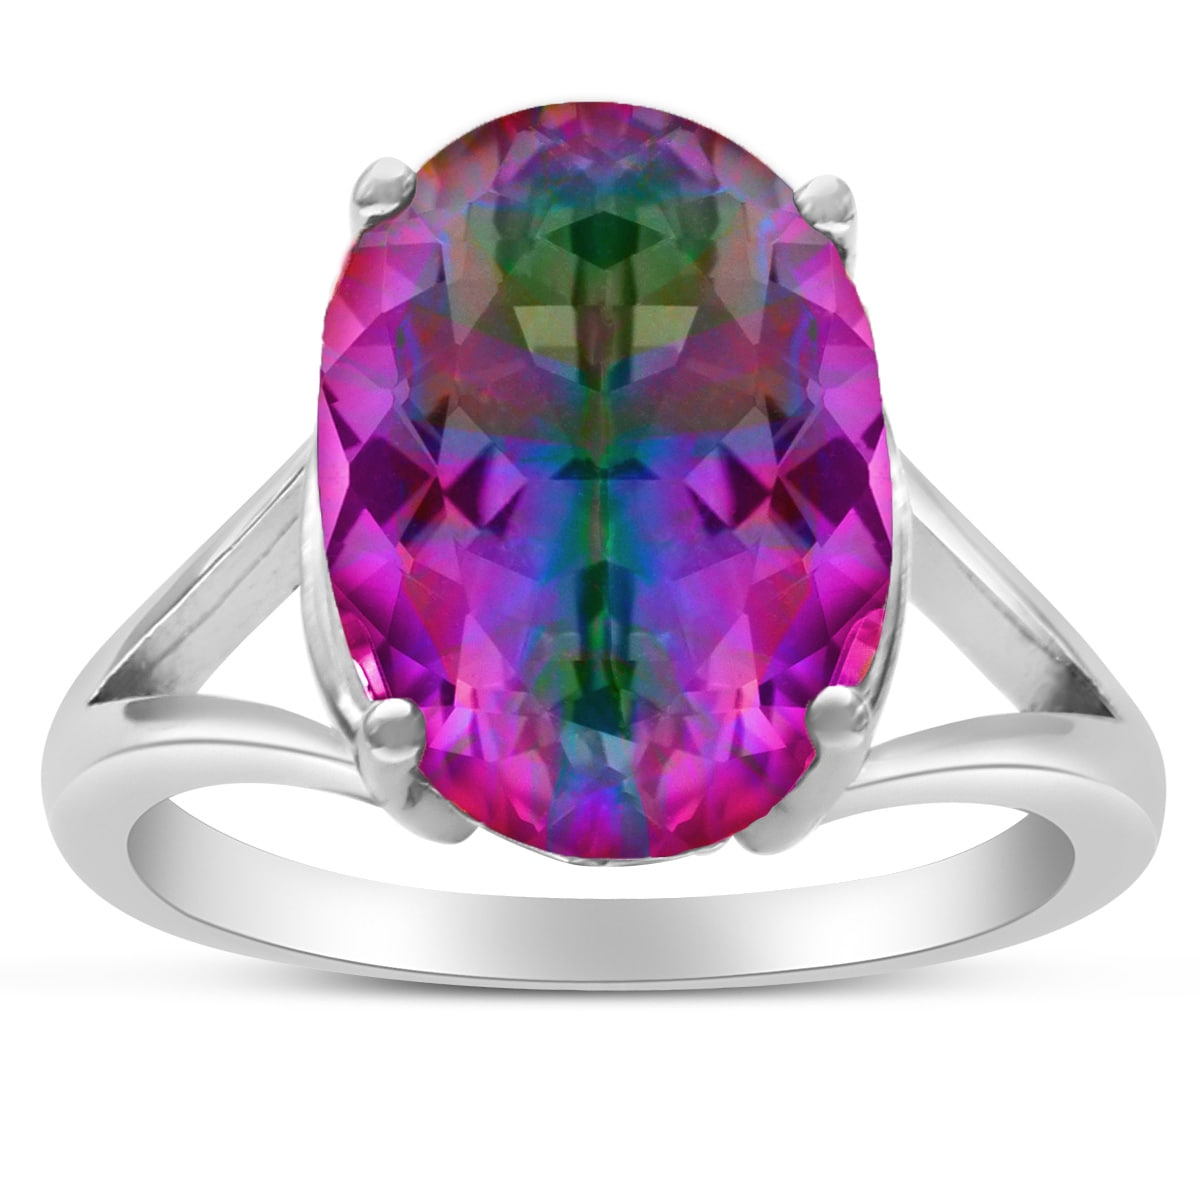 cut ring image gemstone cluster white gold oval jewellery rings amethyst diamond purple